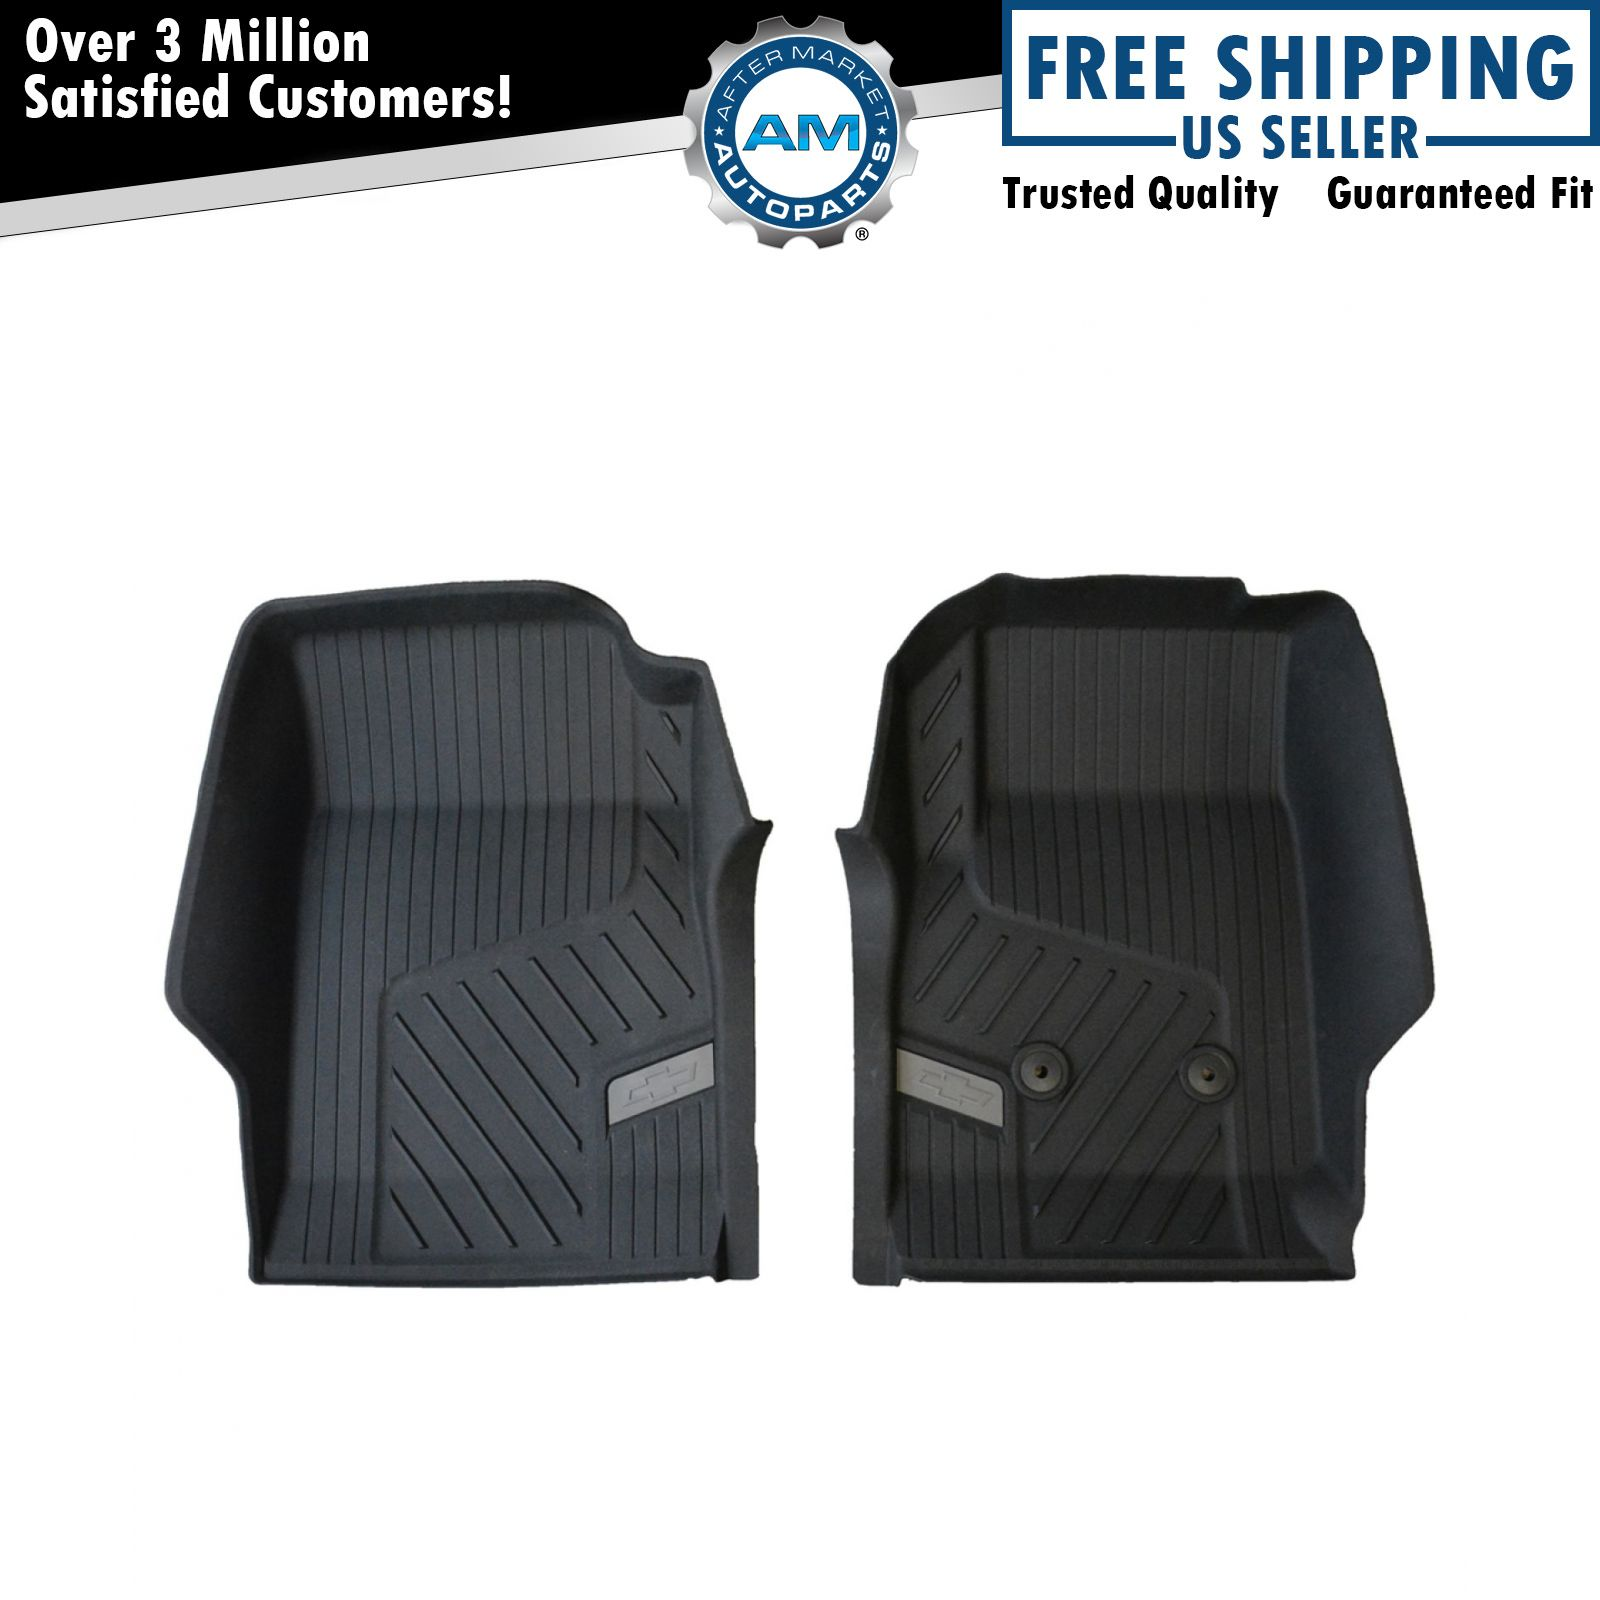 OEM 84056631 Black Rubber Front All Weather Floor Mat Pair